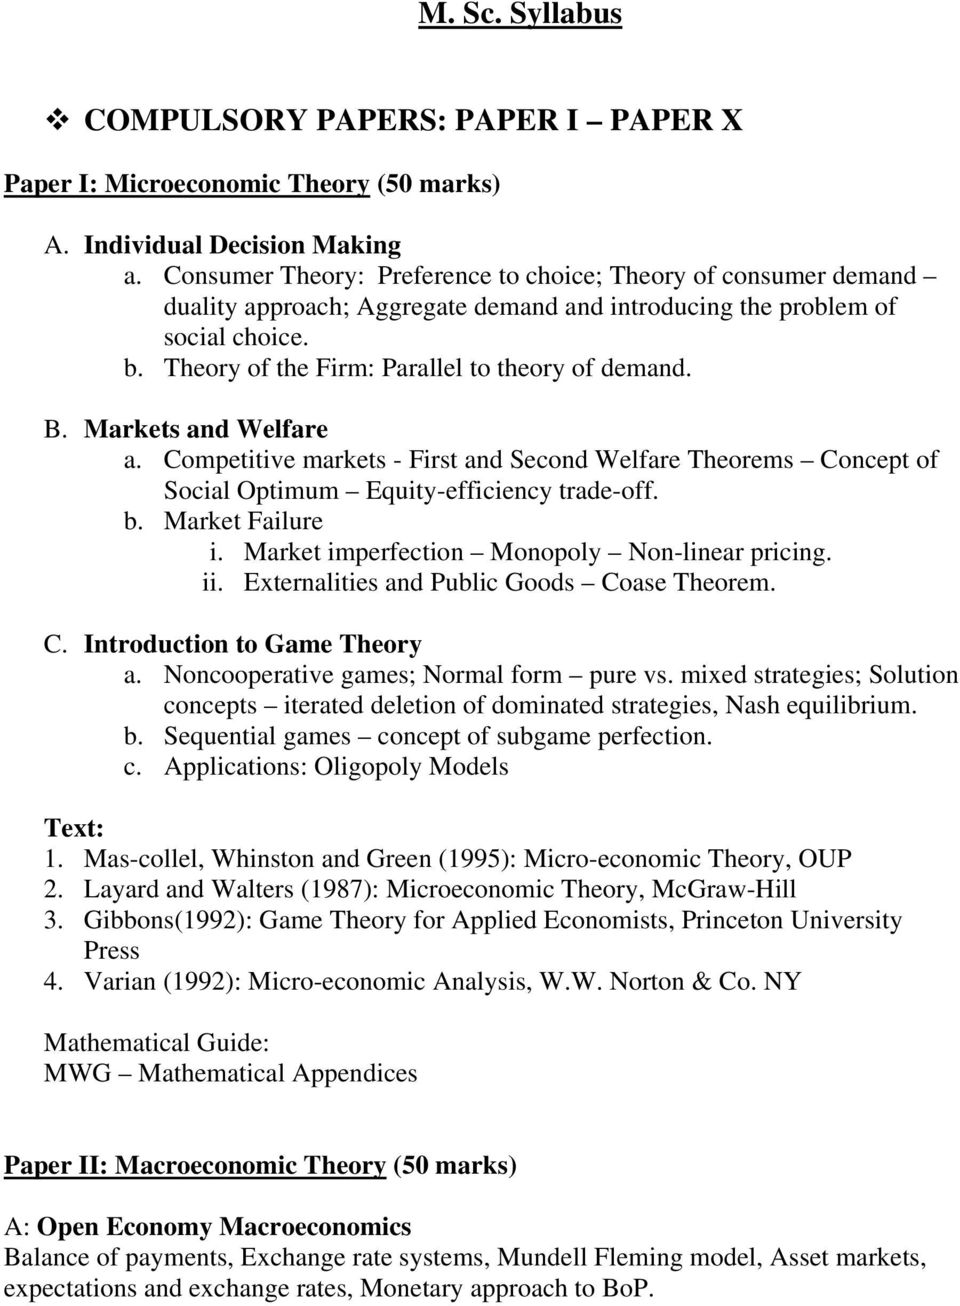 an analysis of models of oligopoly in an economy Application of game theory for duopoly market analysis  oligopoly models are the ones that attract the  oligopoly markets in modern economy.